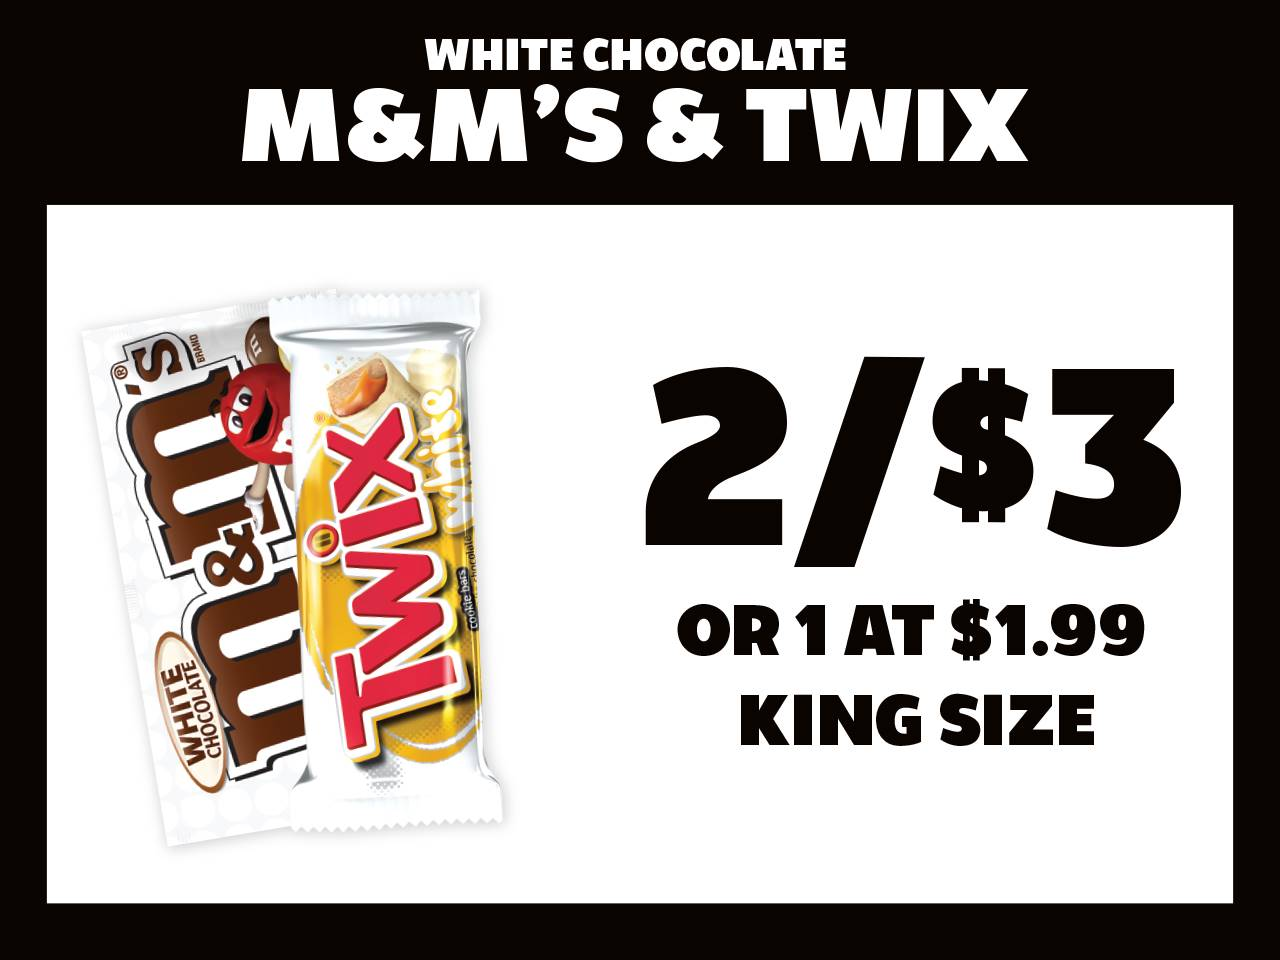 2 King Size White Chocolate M&M's or Twix for $3 or 1 at $1.99